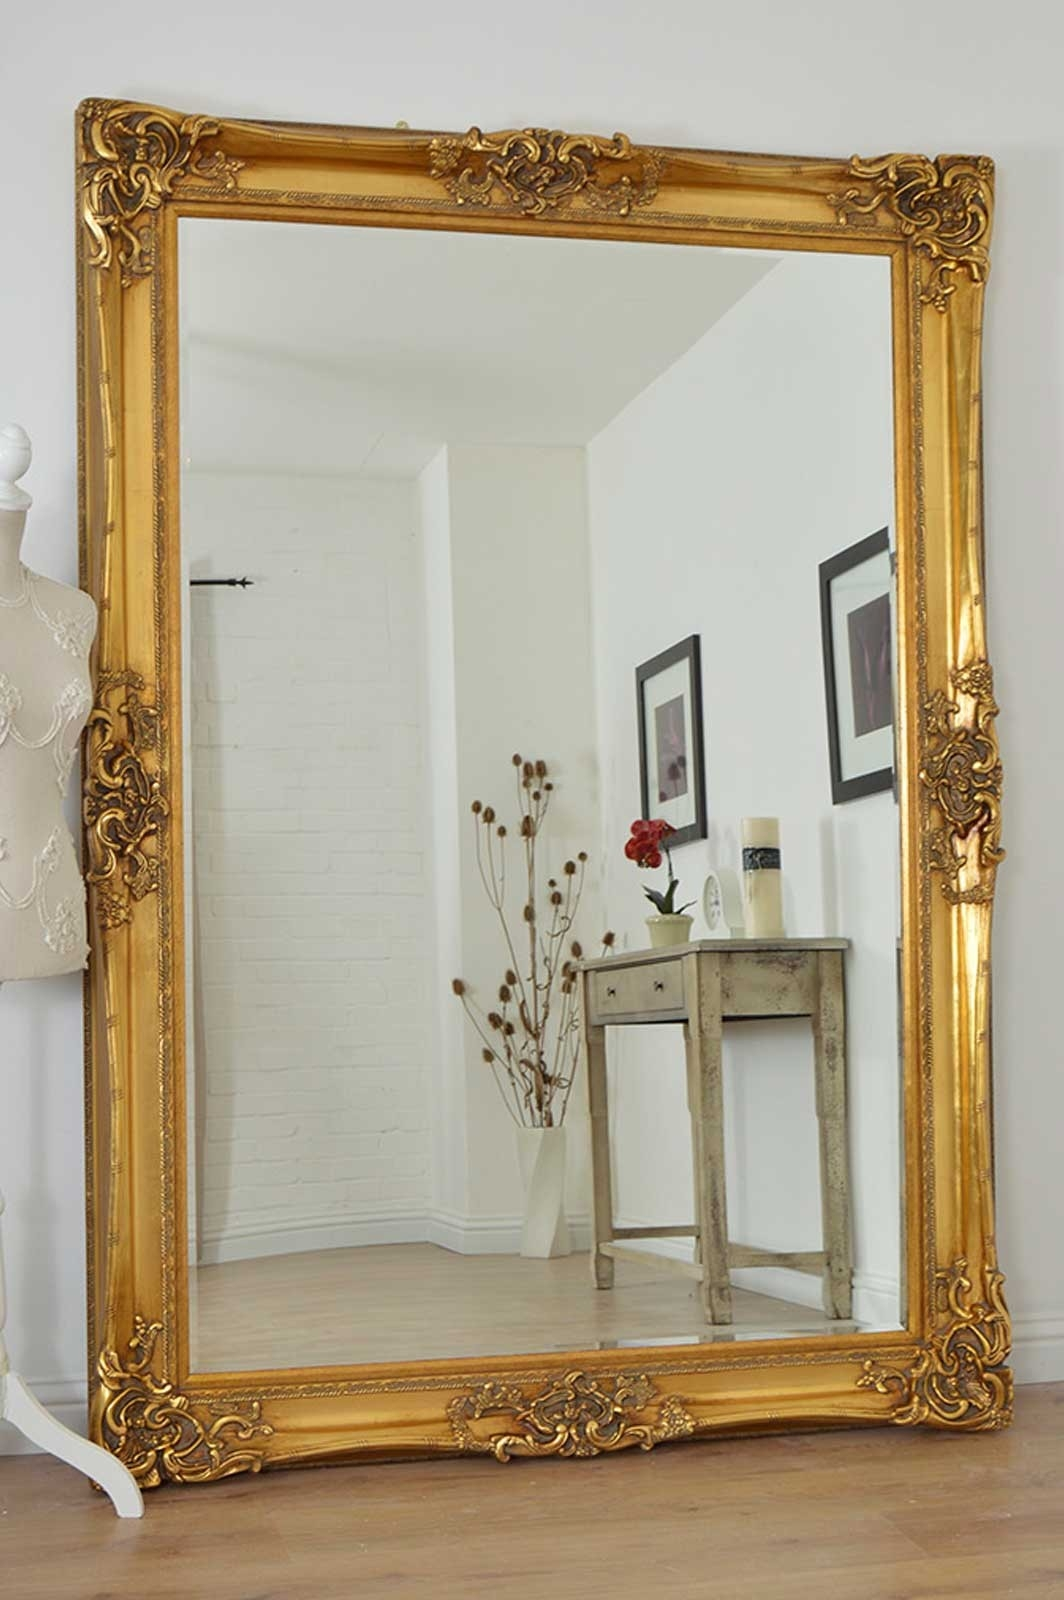 Large Gold Very Ornate Antique Design Wall Mirror 7ft X 5ft 213cm Regarding Large Old Mirrors For Sale (Image 13 of 15)